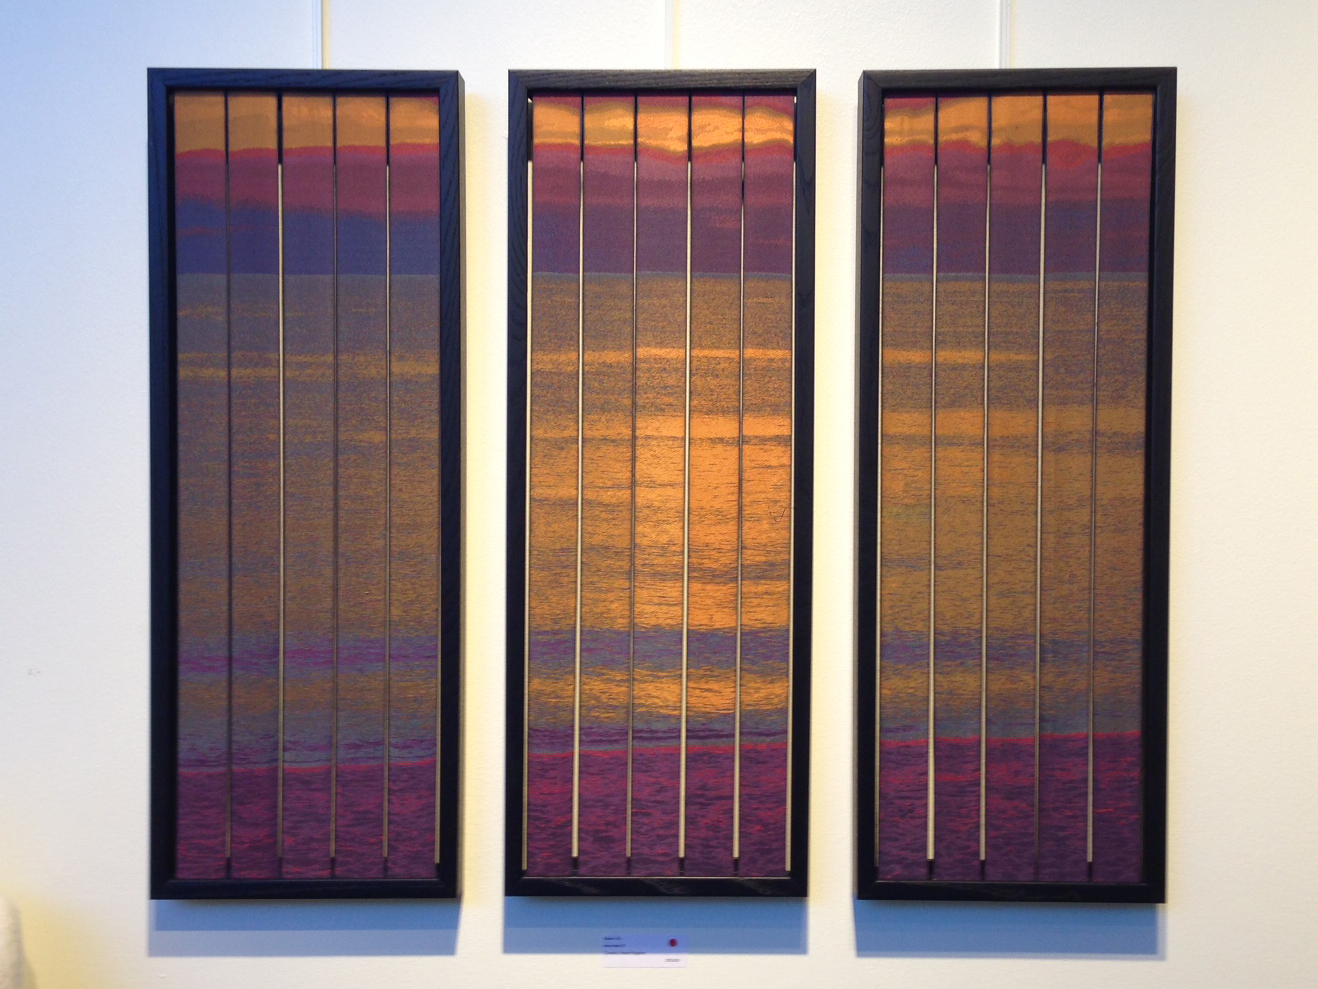 Interludes III jacquard woven silk triptych by Robert Ely on display at Complexity 2016